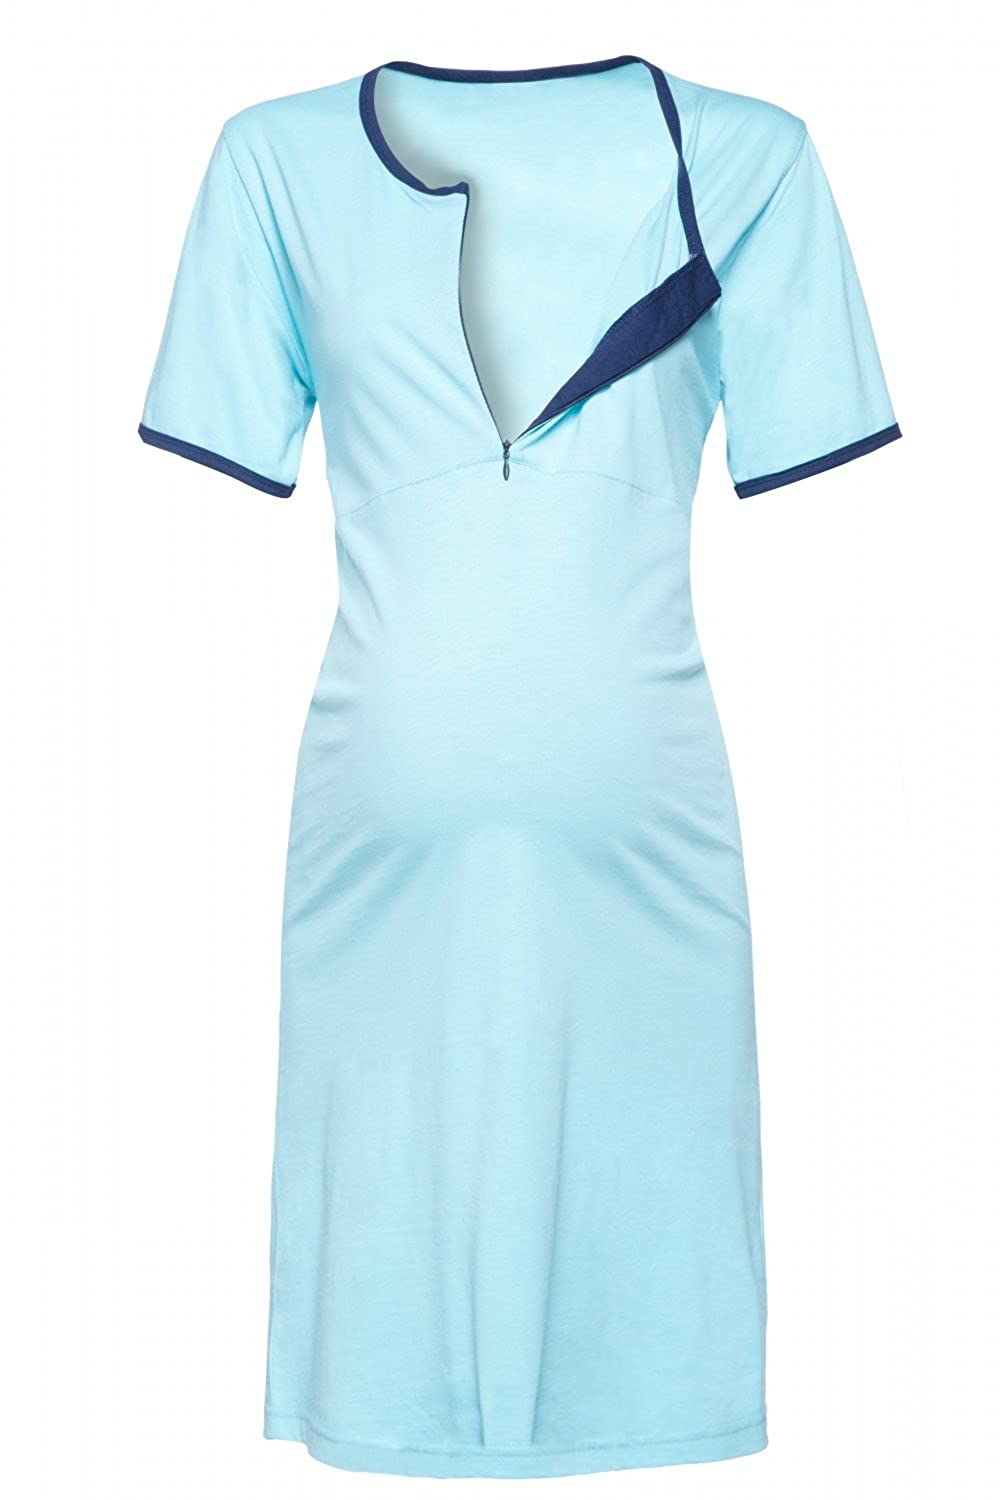 Happy Mama. Womens Maternity Nursing Breastfeeding Nightdress Shirt Gown. 350p nursing_night_350